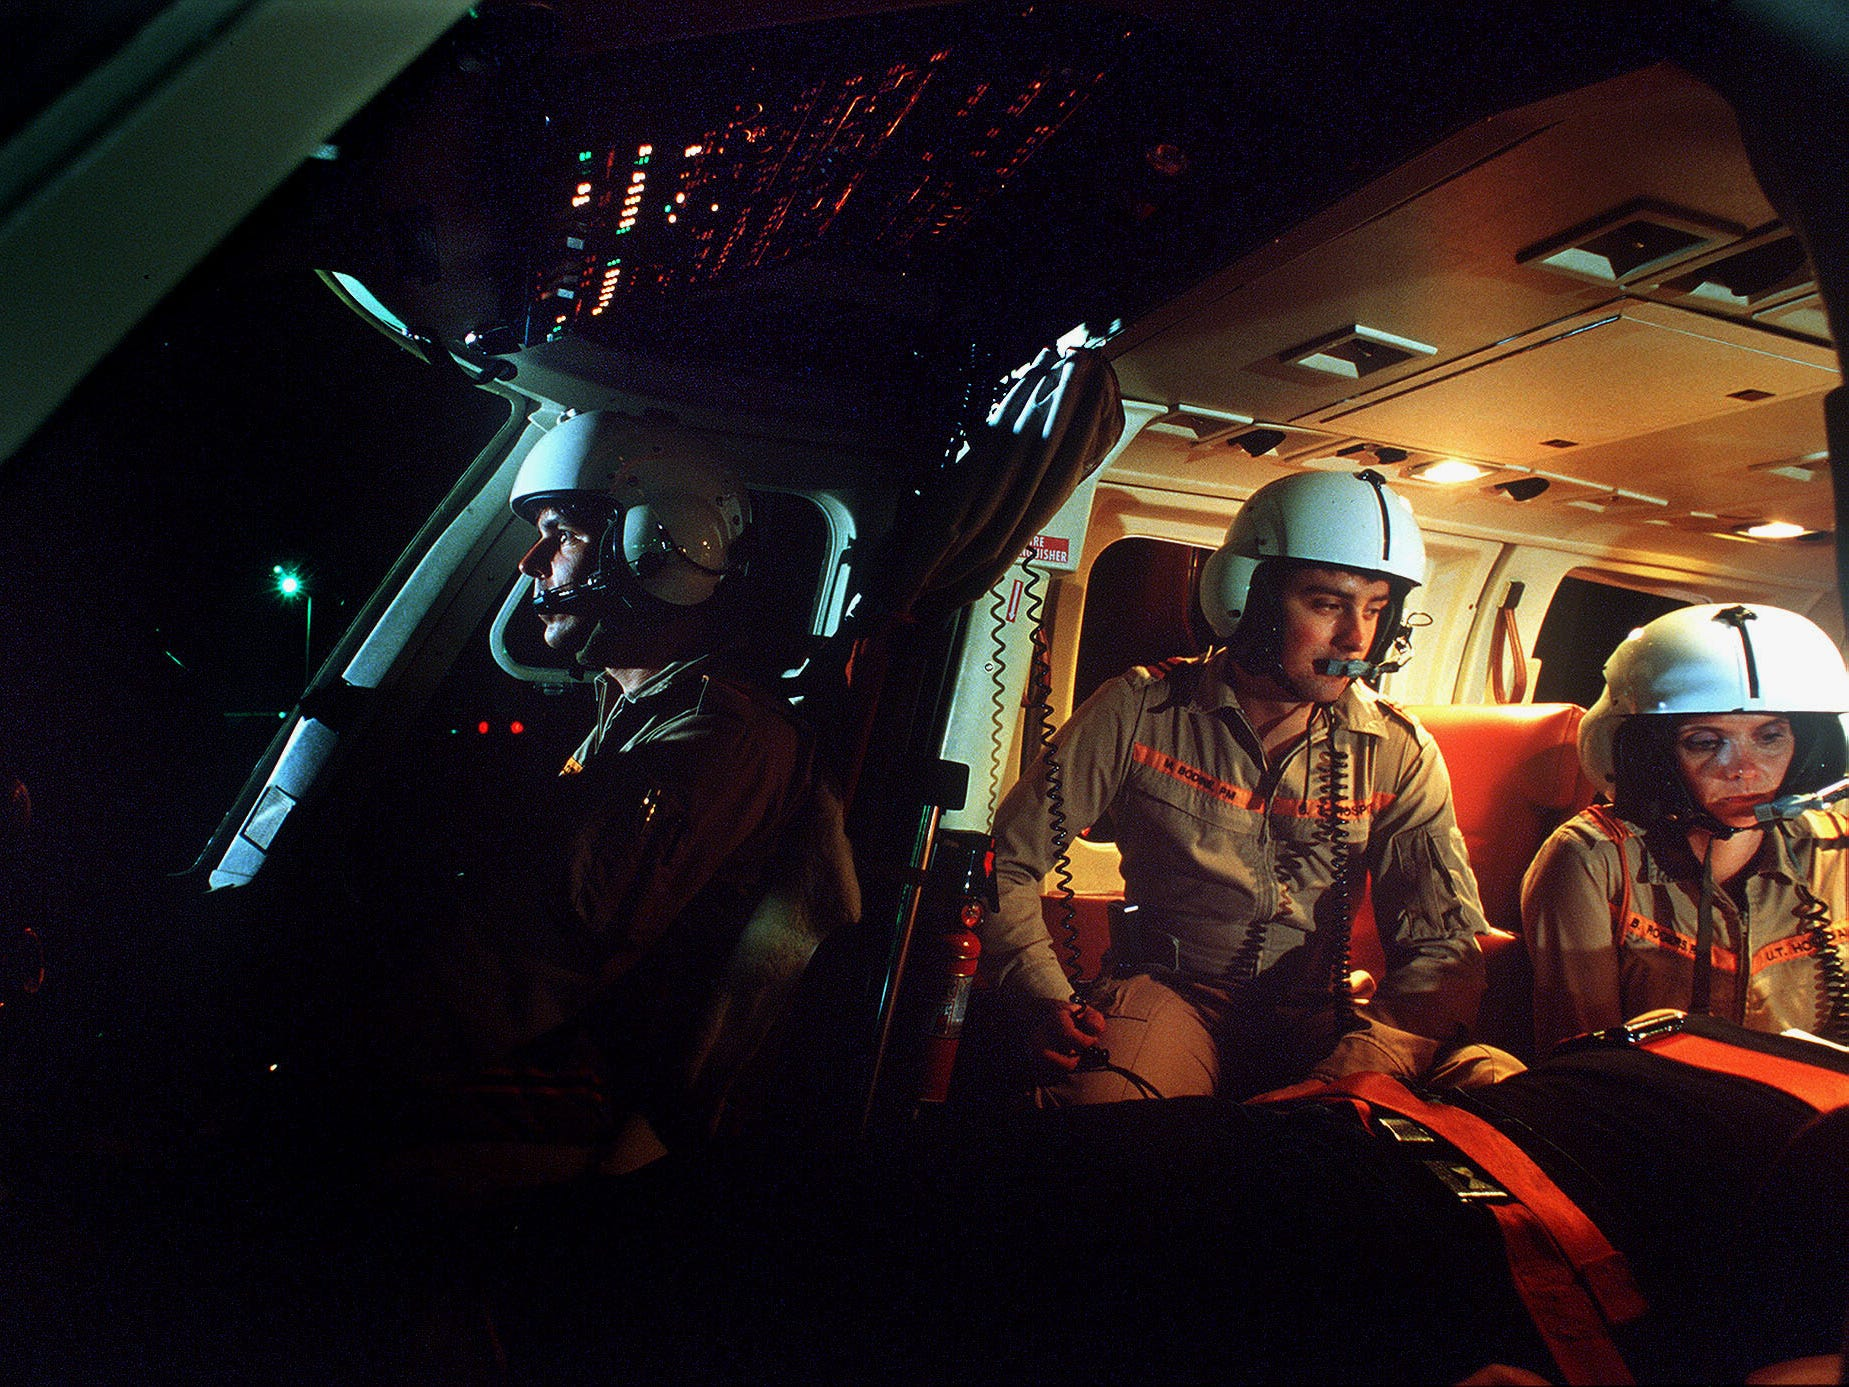 LifeStar crew during a book project for the State and the upcoming Tennessee Homecoming 1986.